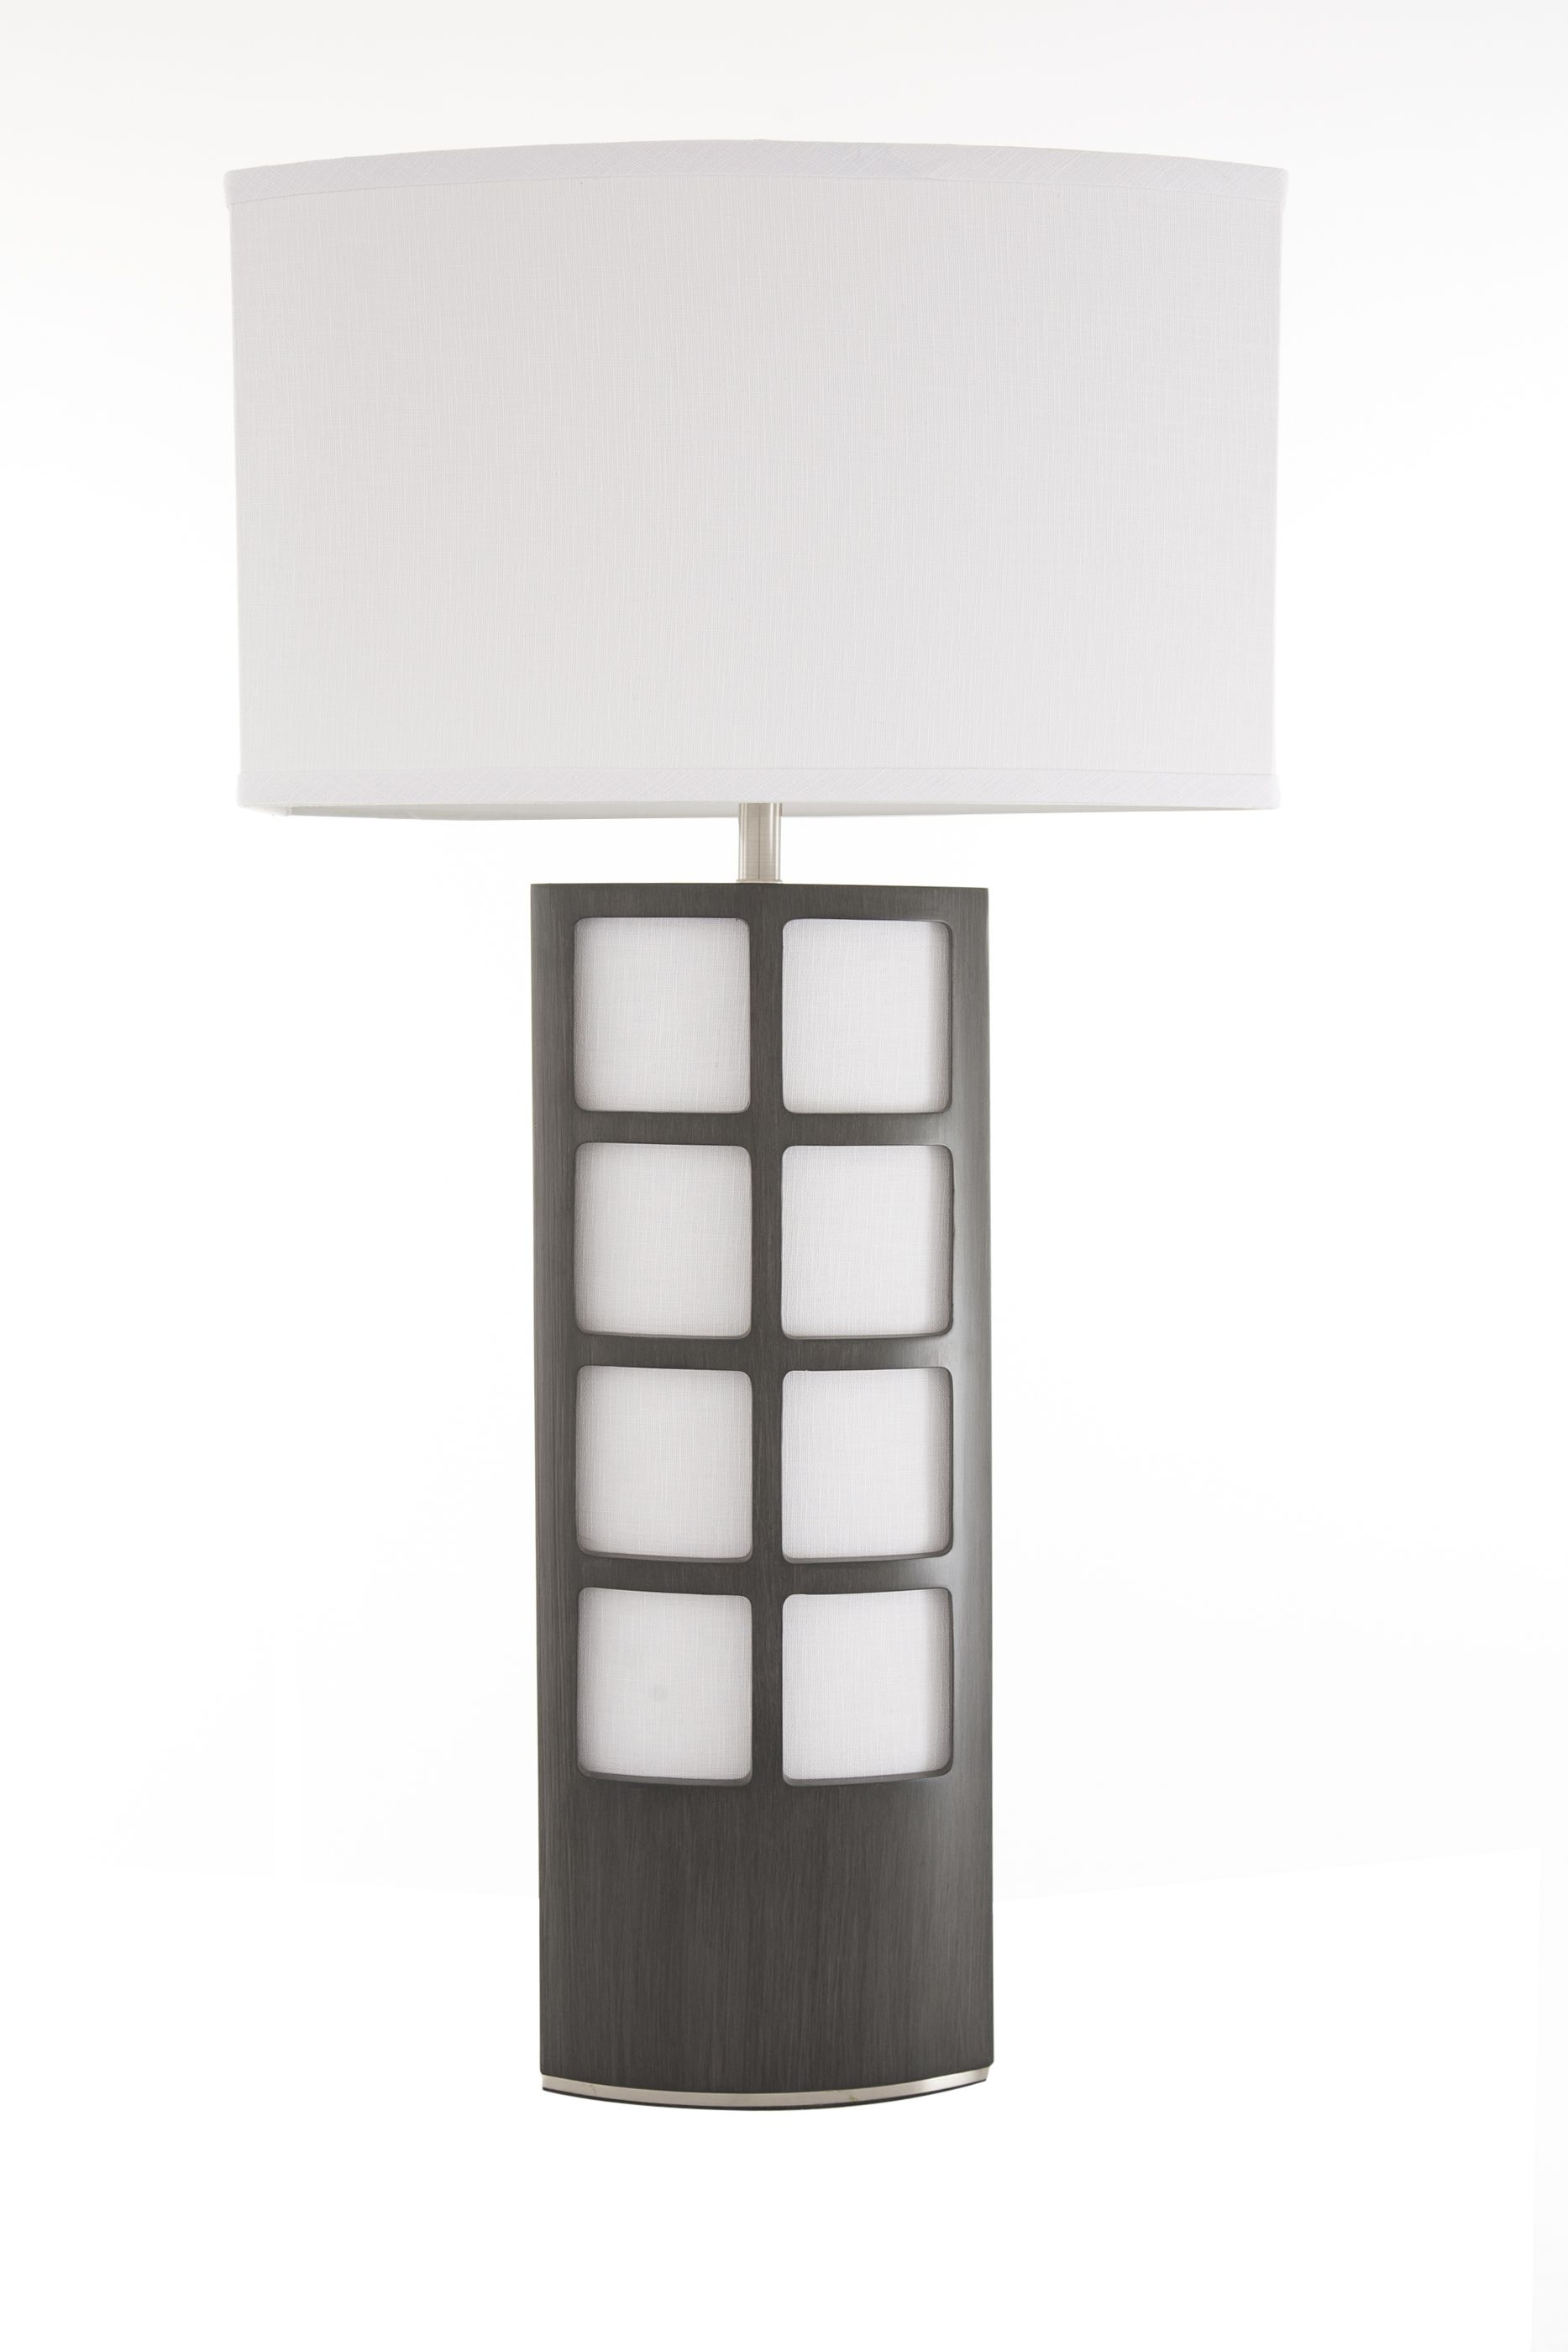 Open a window to fresh design with the Ventana Table Lamp from Nova